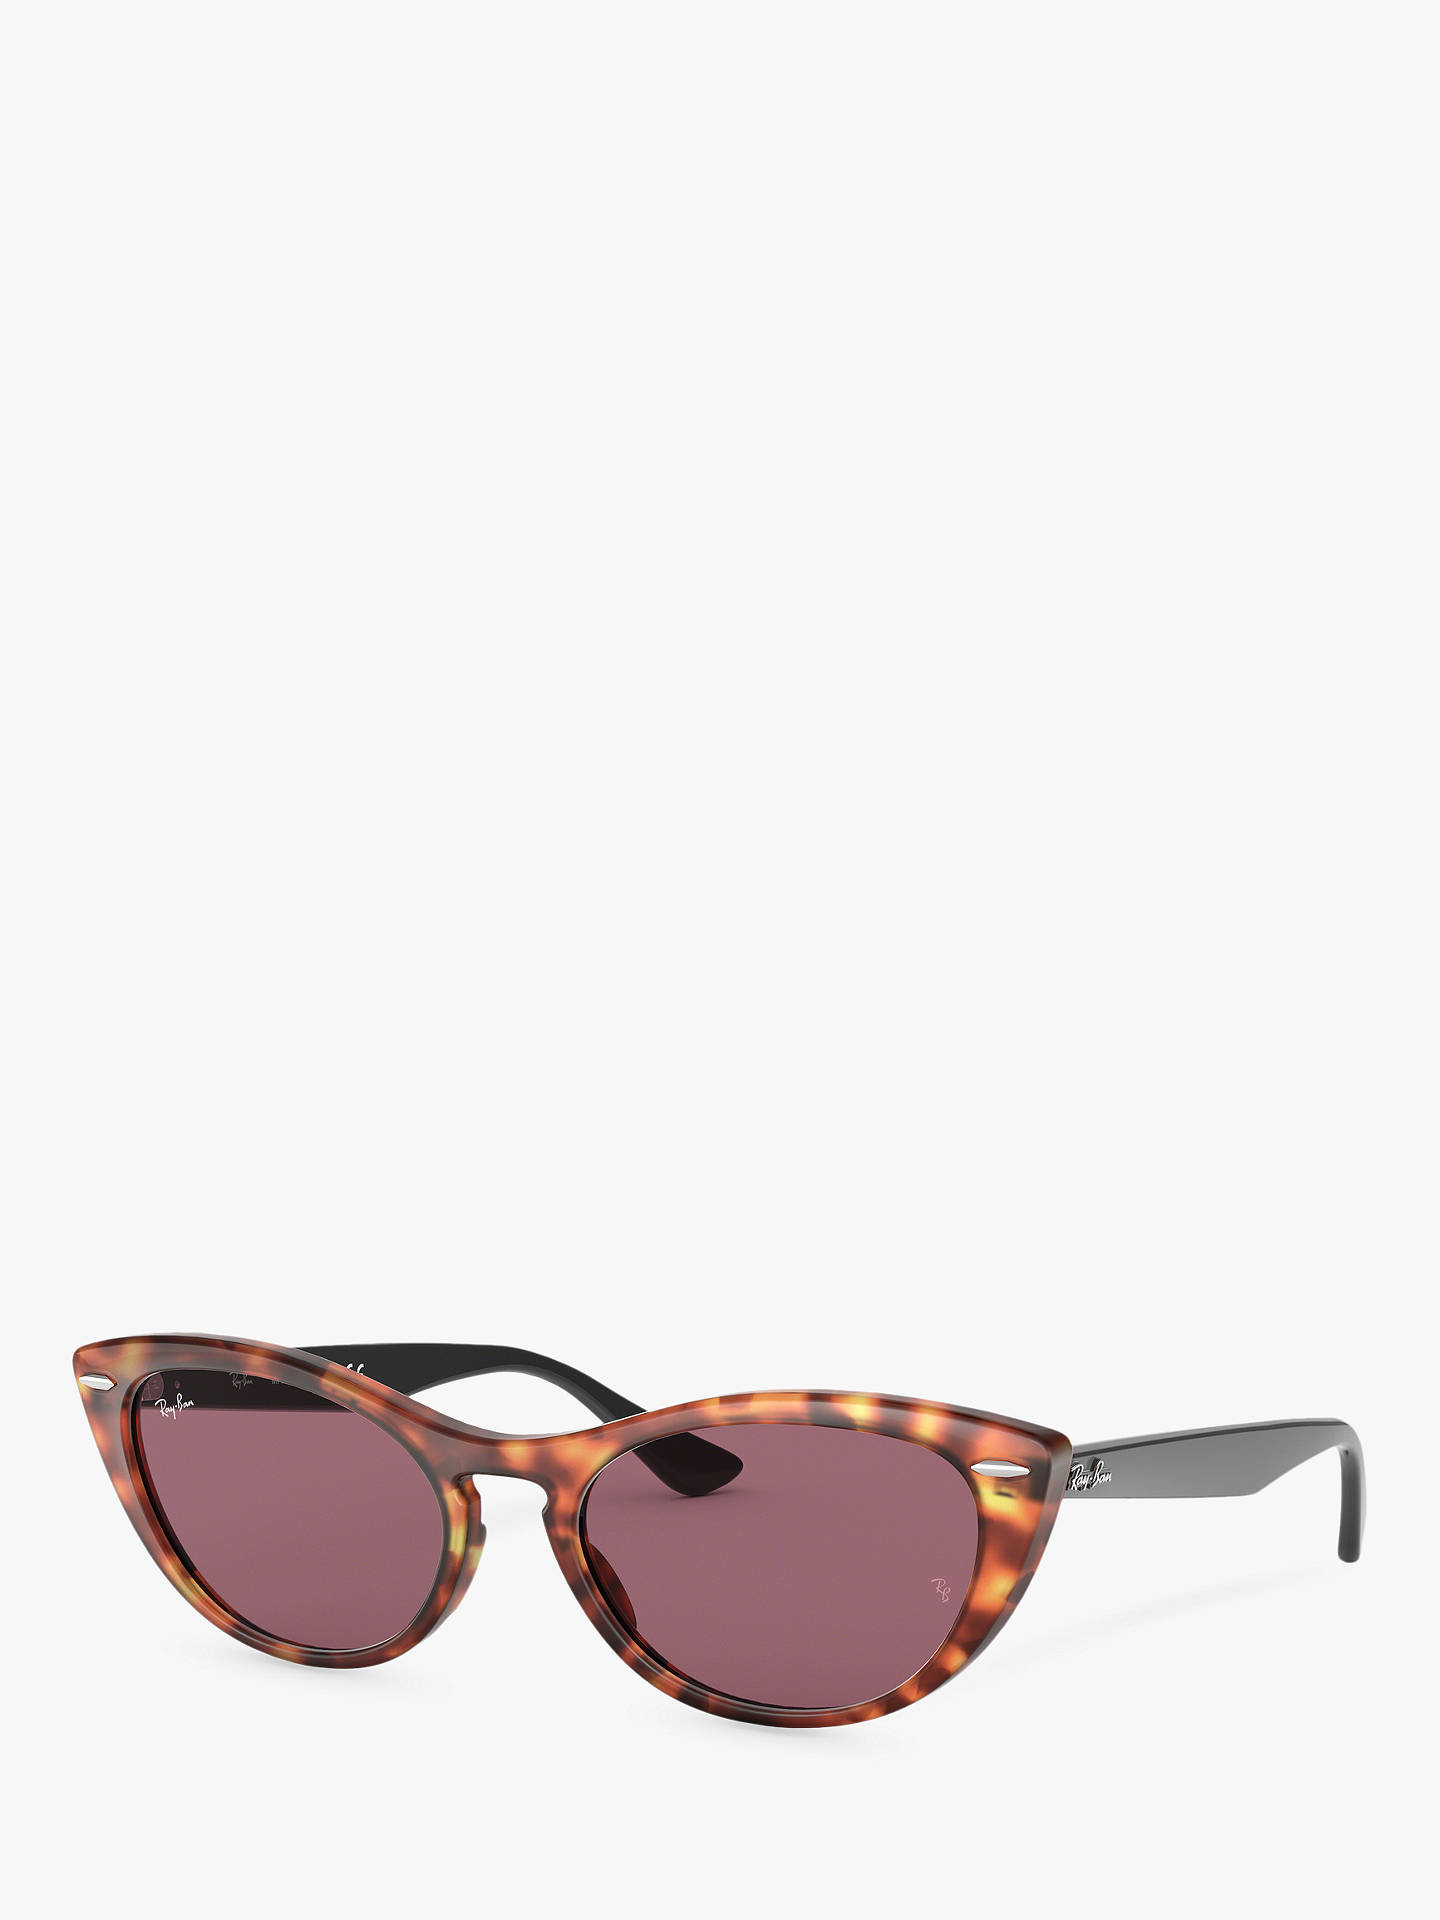 30a4d78b0 Buy Ray-Ban RB4314N Women's Cat's Eye Sunglasses, Havana Red Online at  johnlewis.